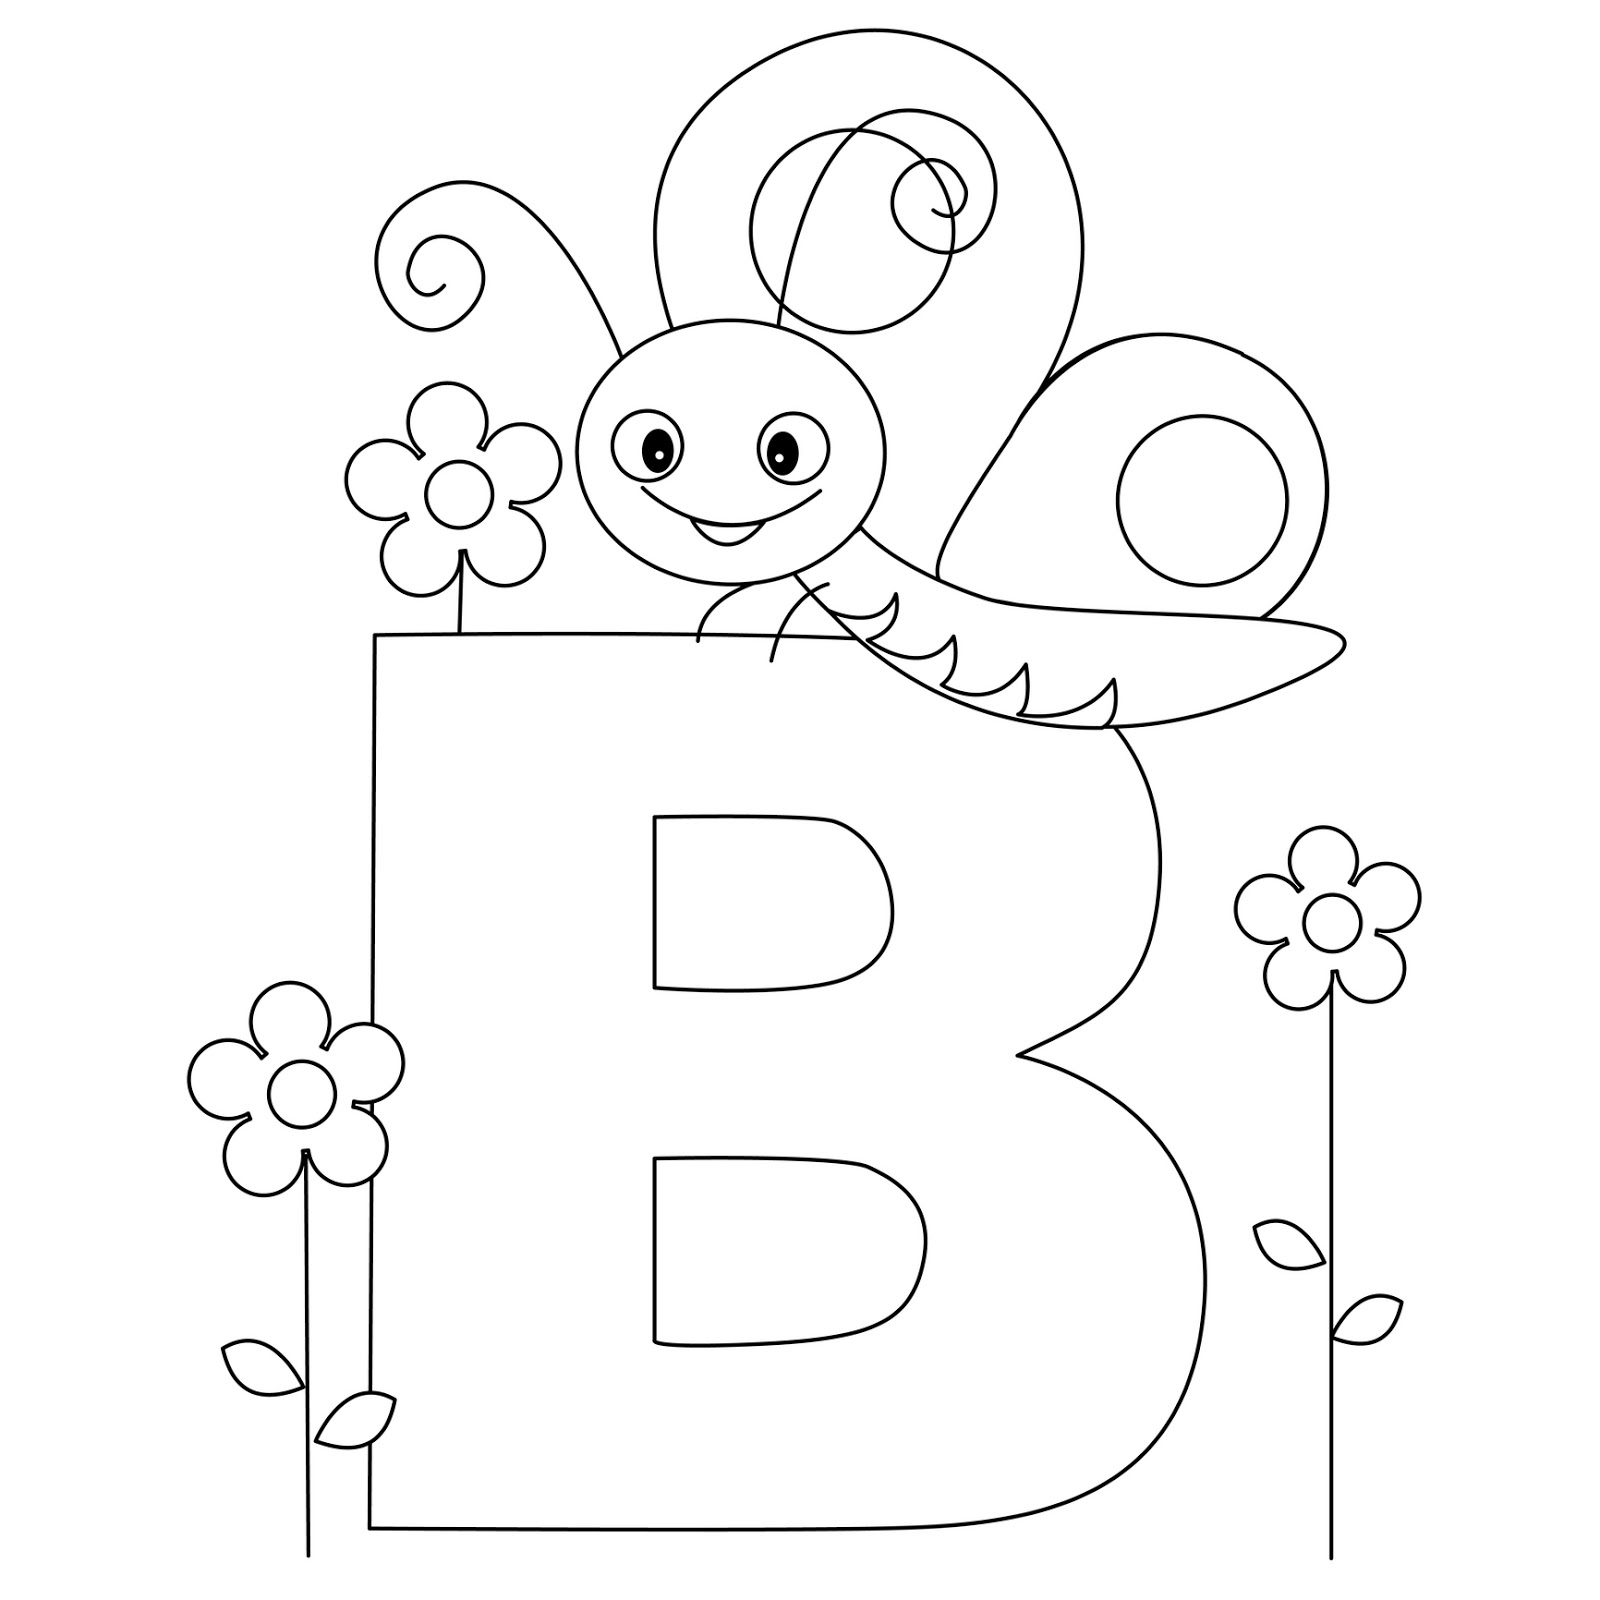 Coloring pictures for adults letters - Letter B Coloring Pages